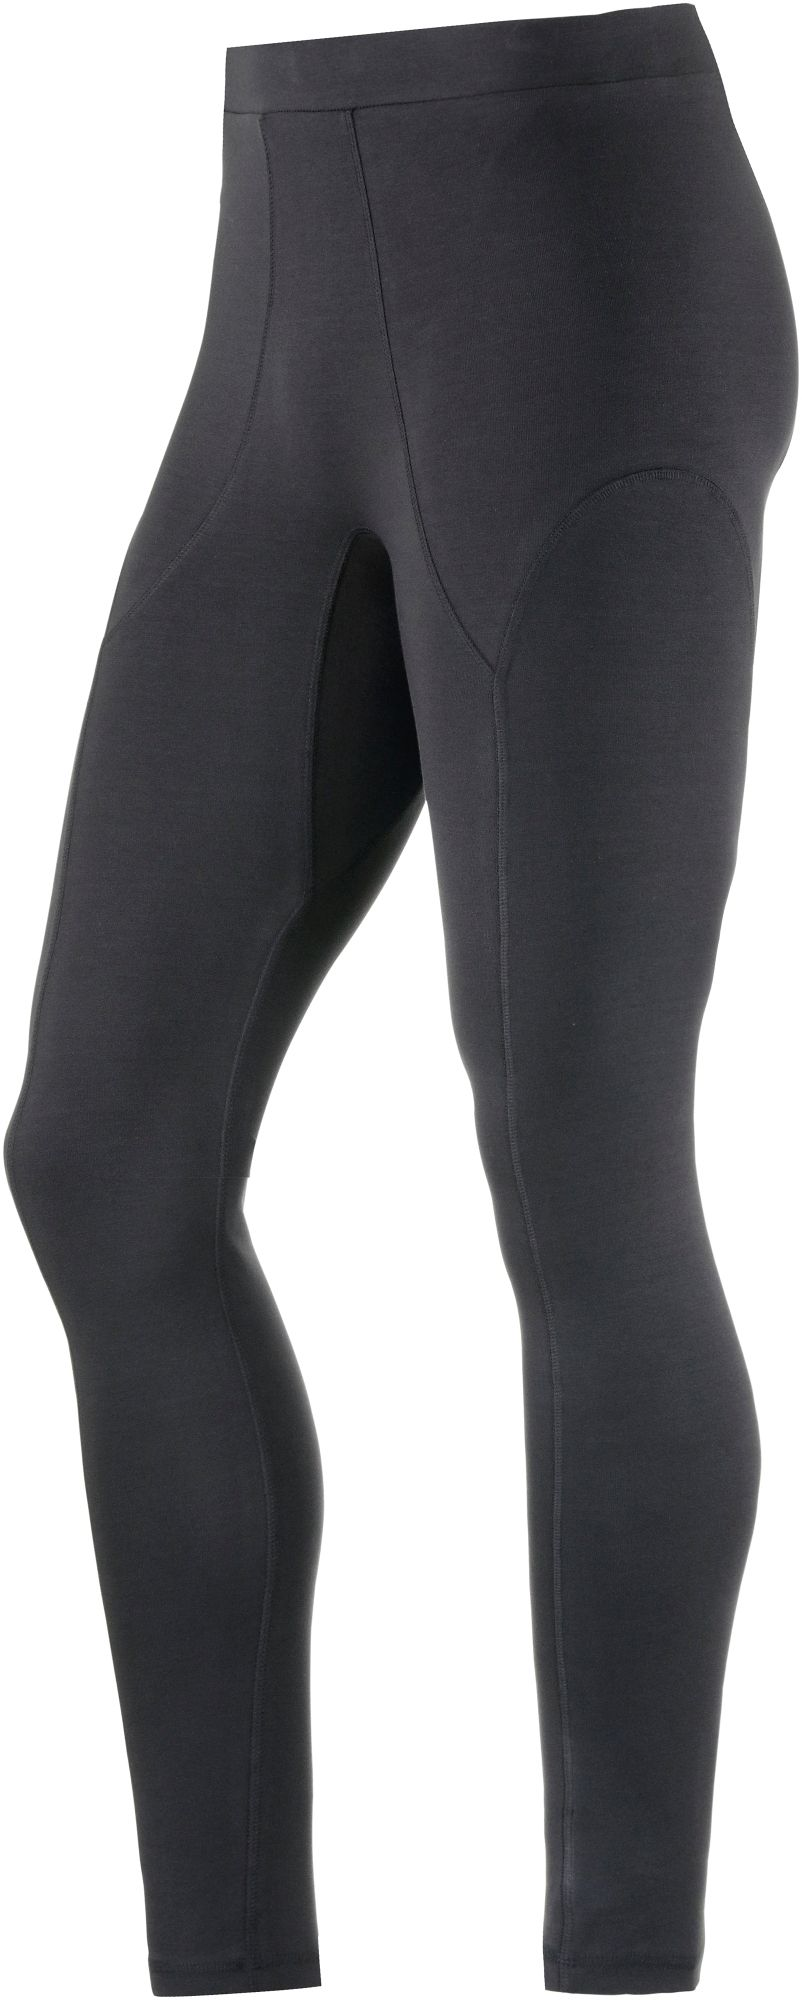 Bild wellicious Yoga Leggings Herren